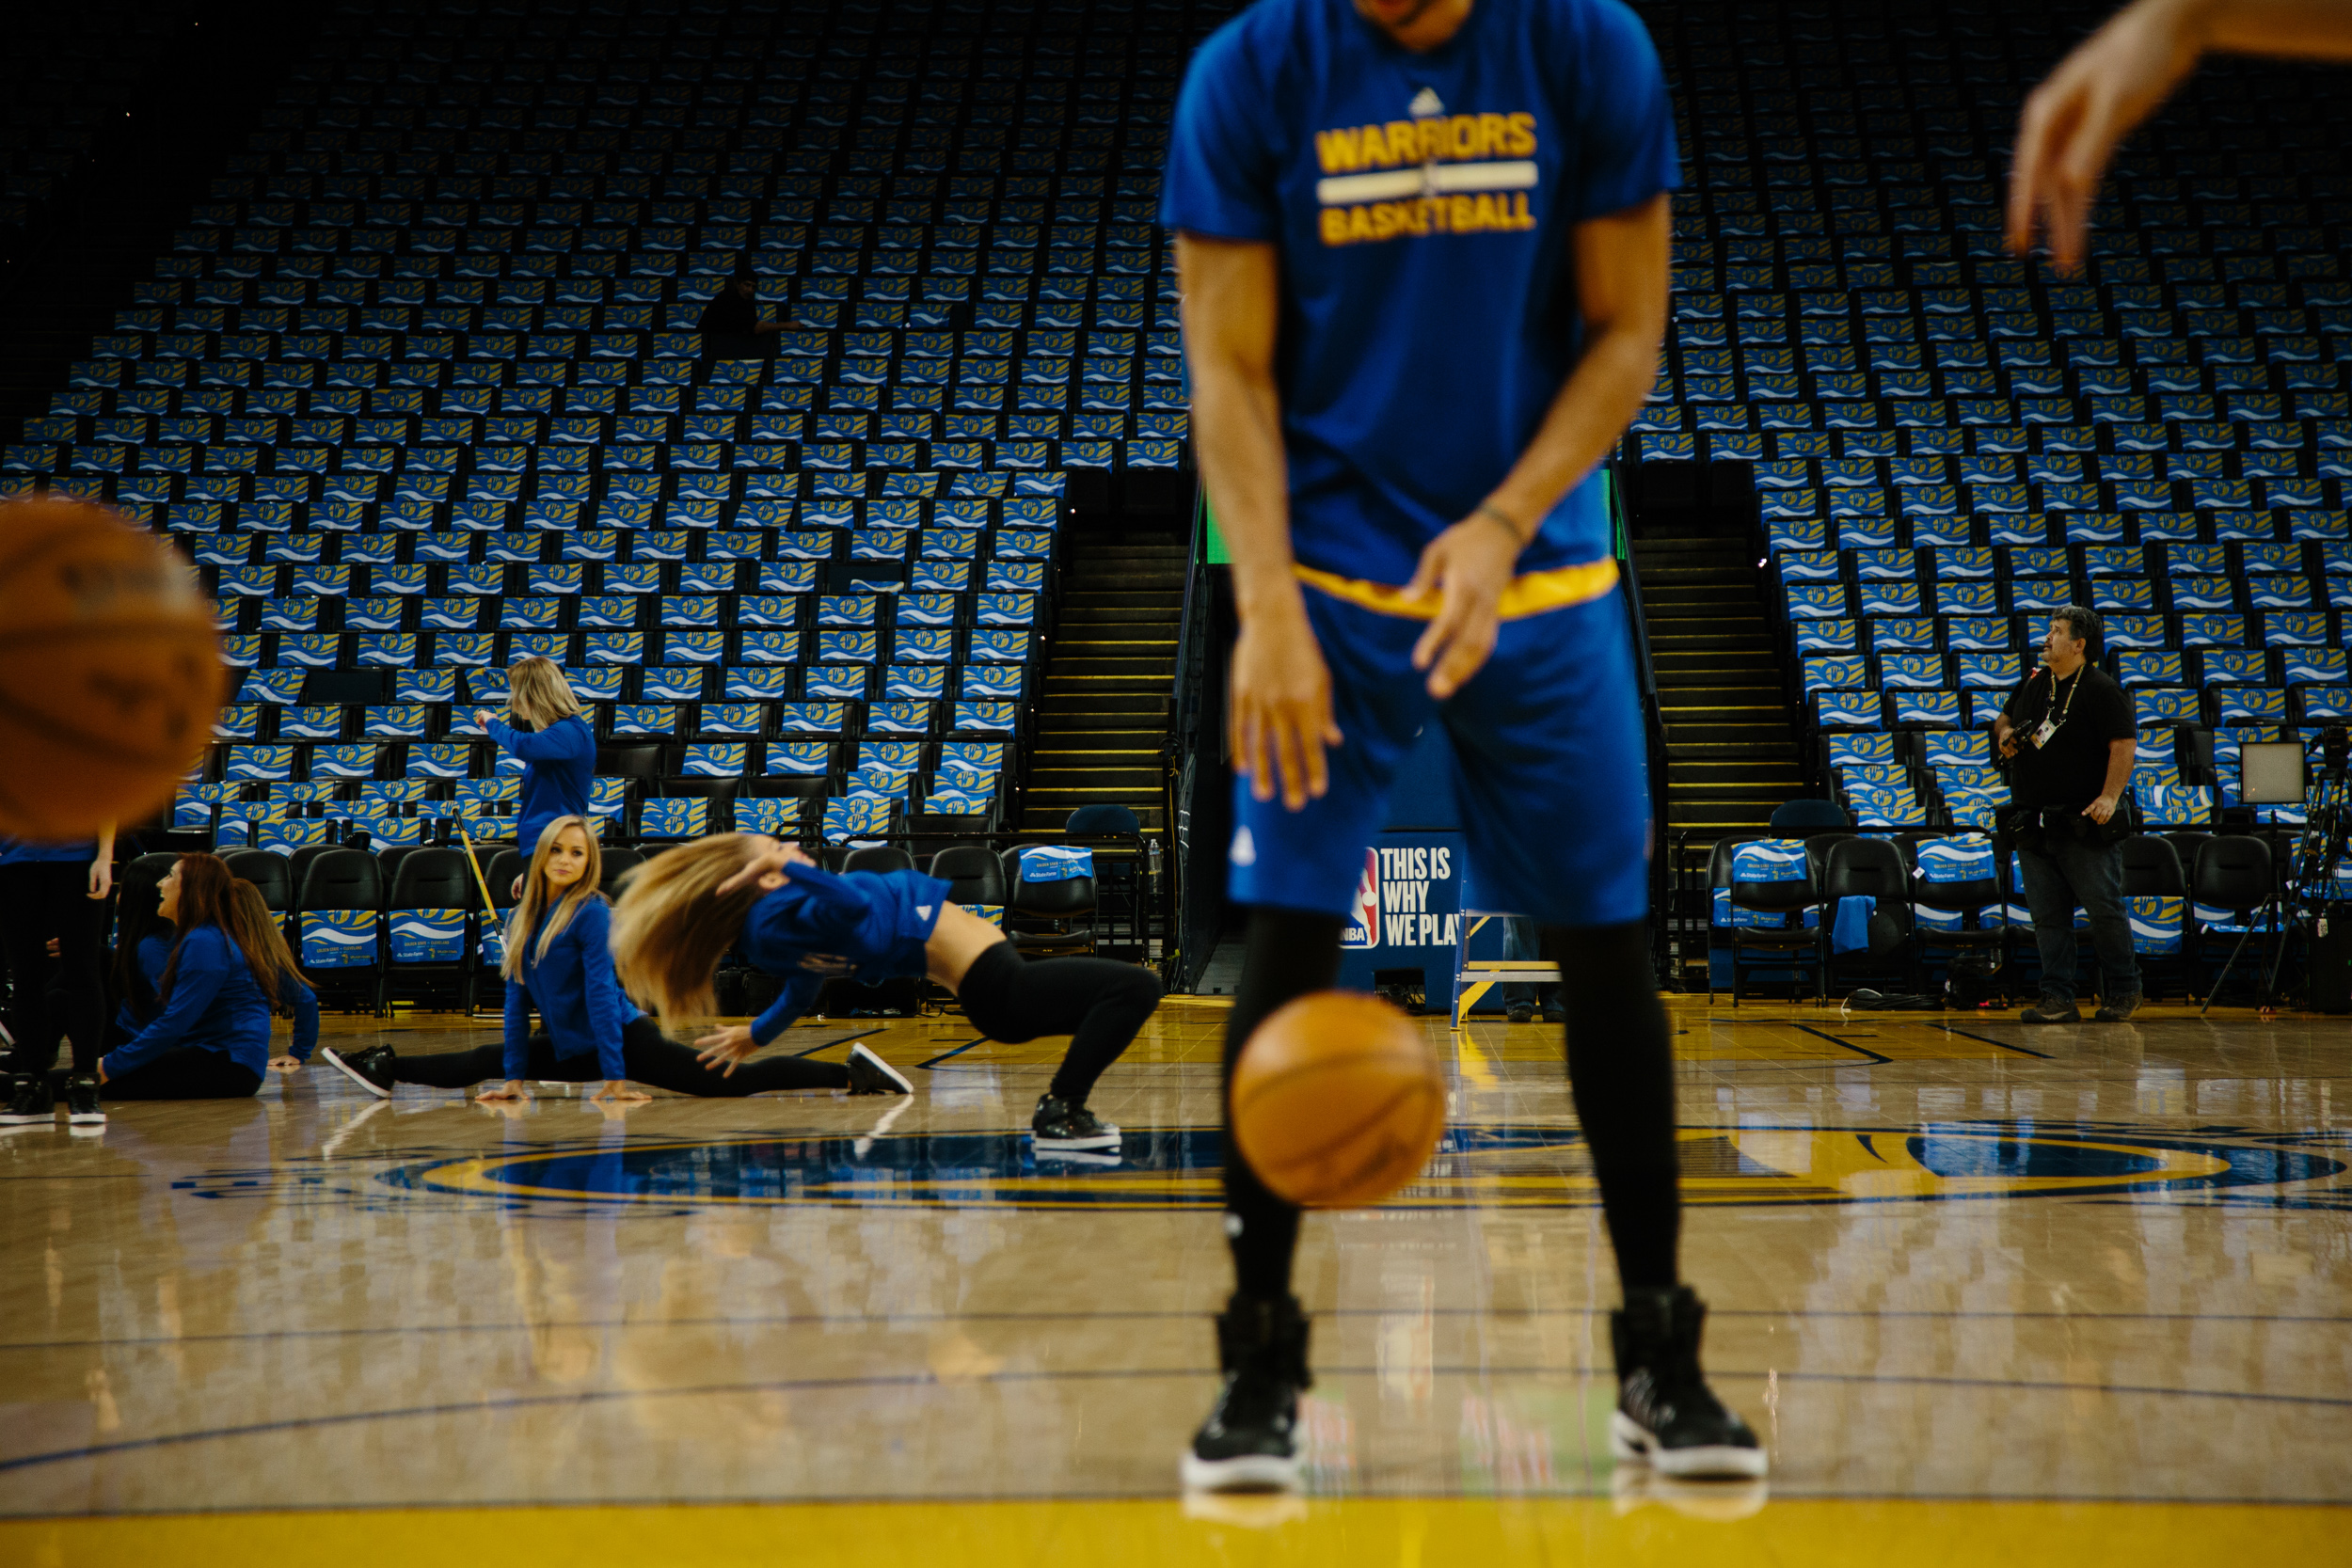 McAdoo warms up before a Warriors home game. In the background, the Warriors dancers practice their dance routine. McAdoo is often the first one on the court warming up; he is so early that technicians are still finishing setting up pyrotechnics and dancers are rehearsing on the court at the same time.